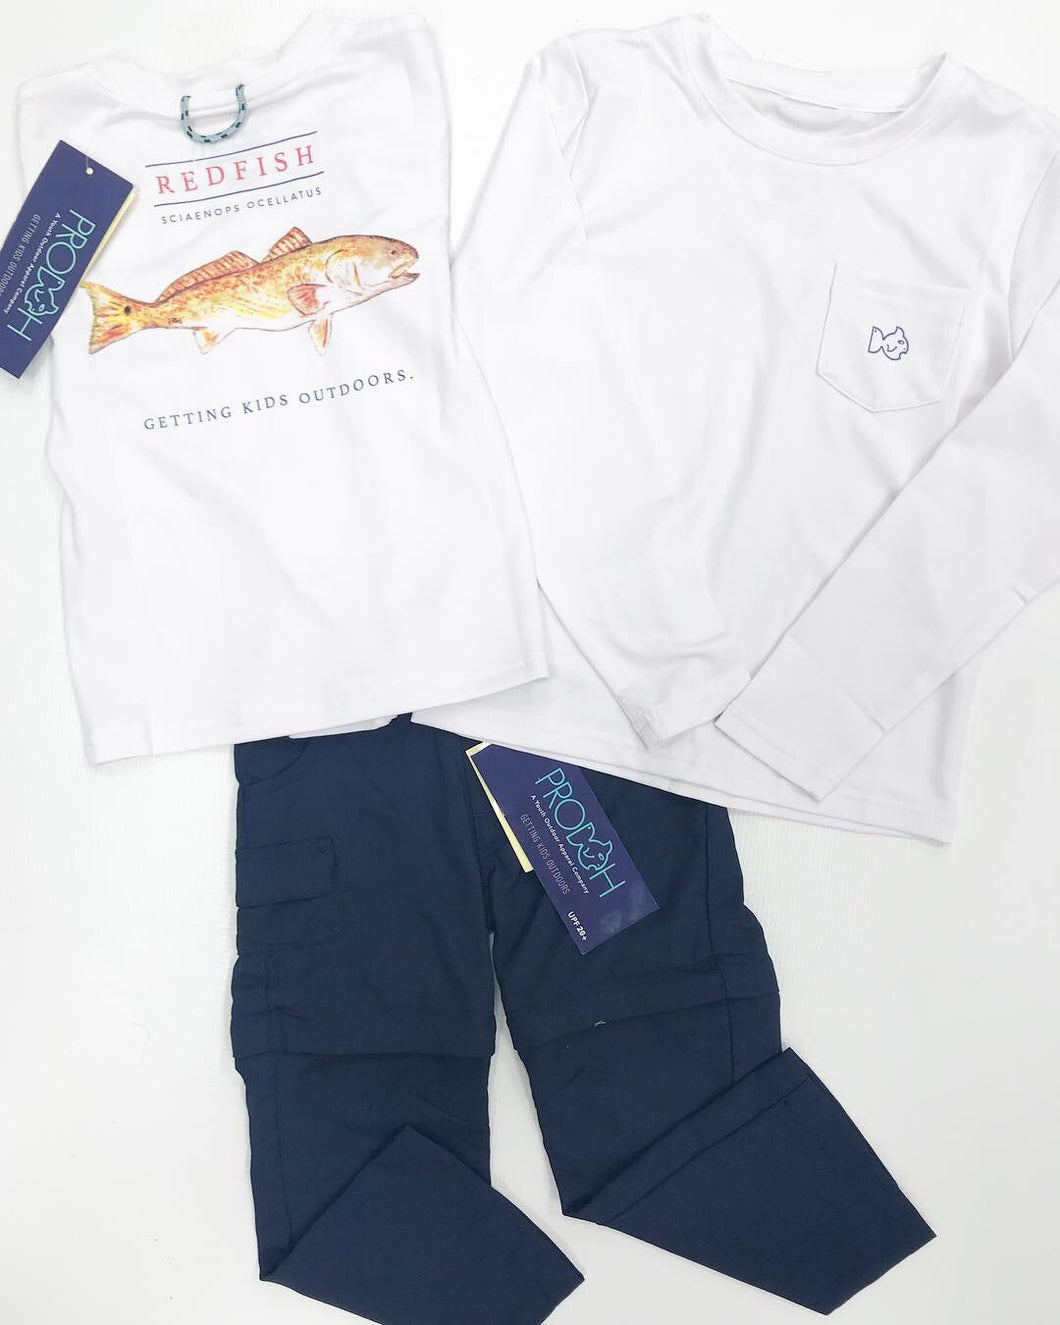 White Redfish Performance Tee